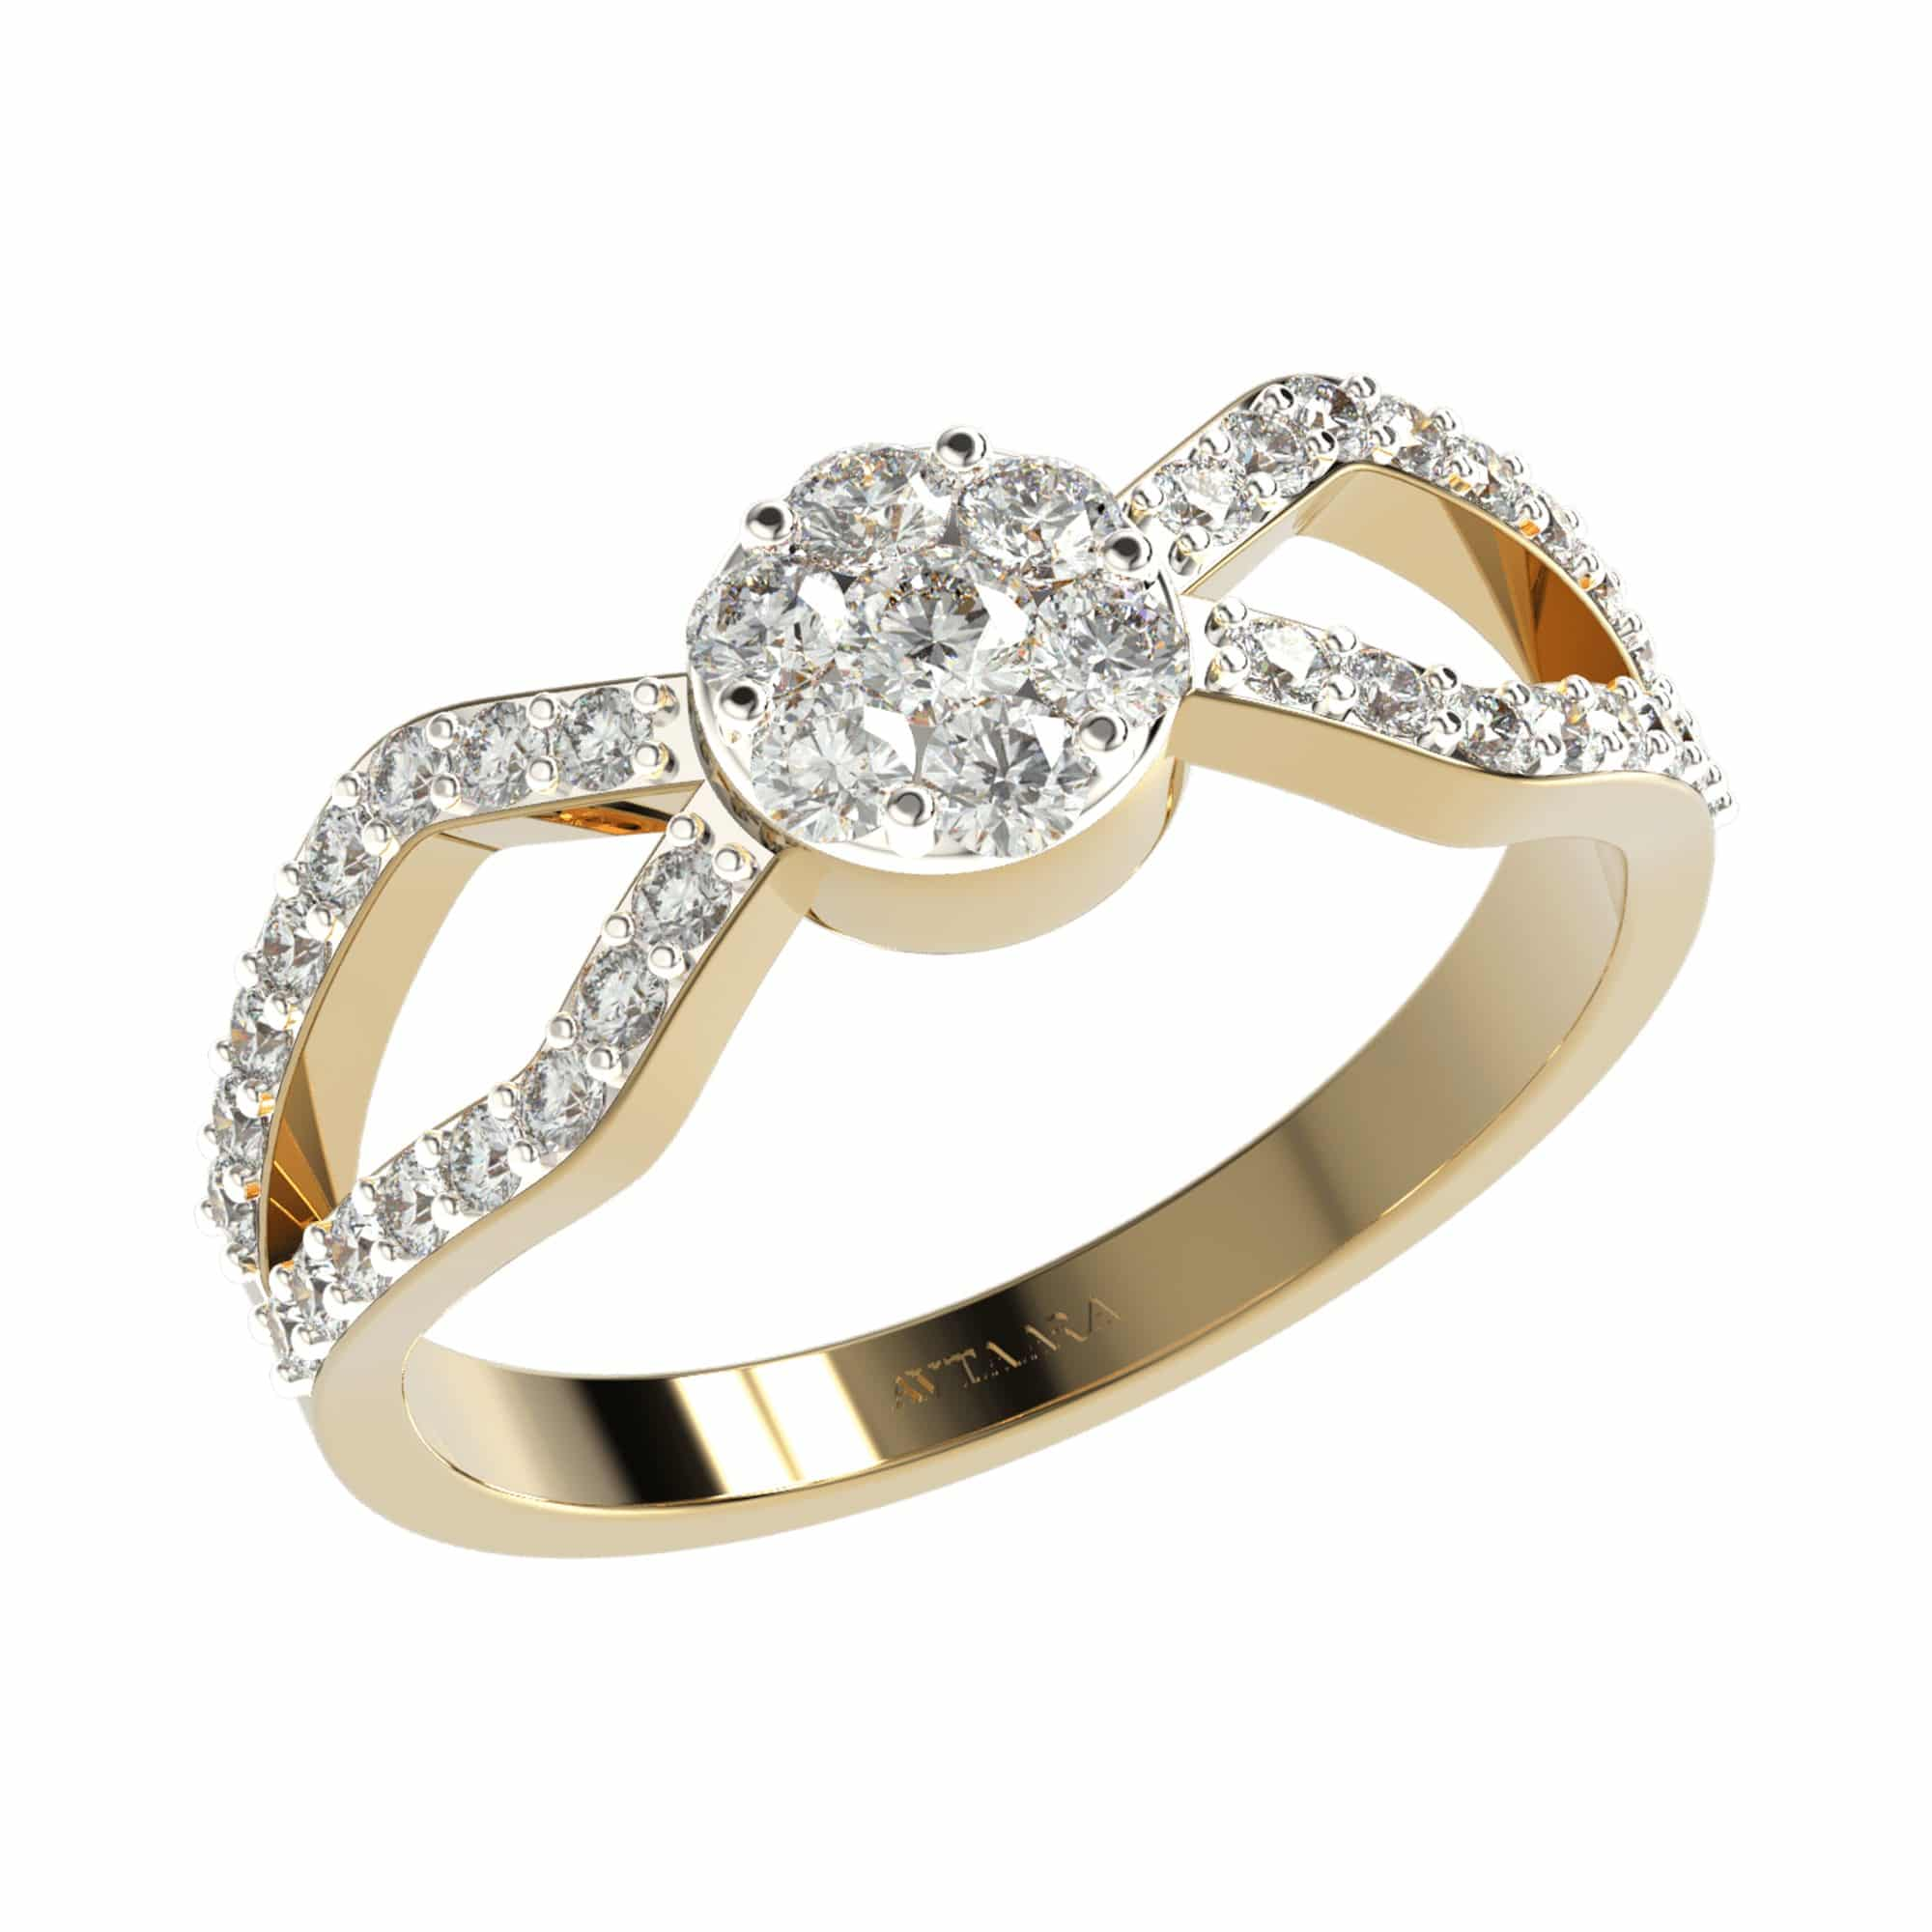 Rounded cage ring